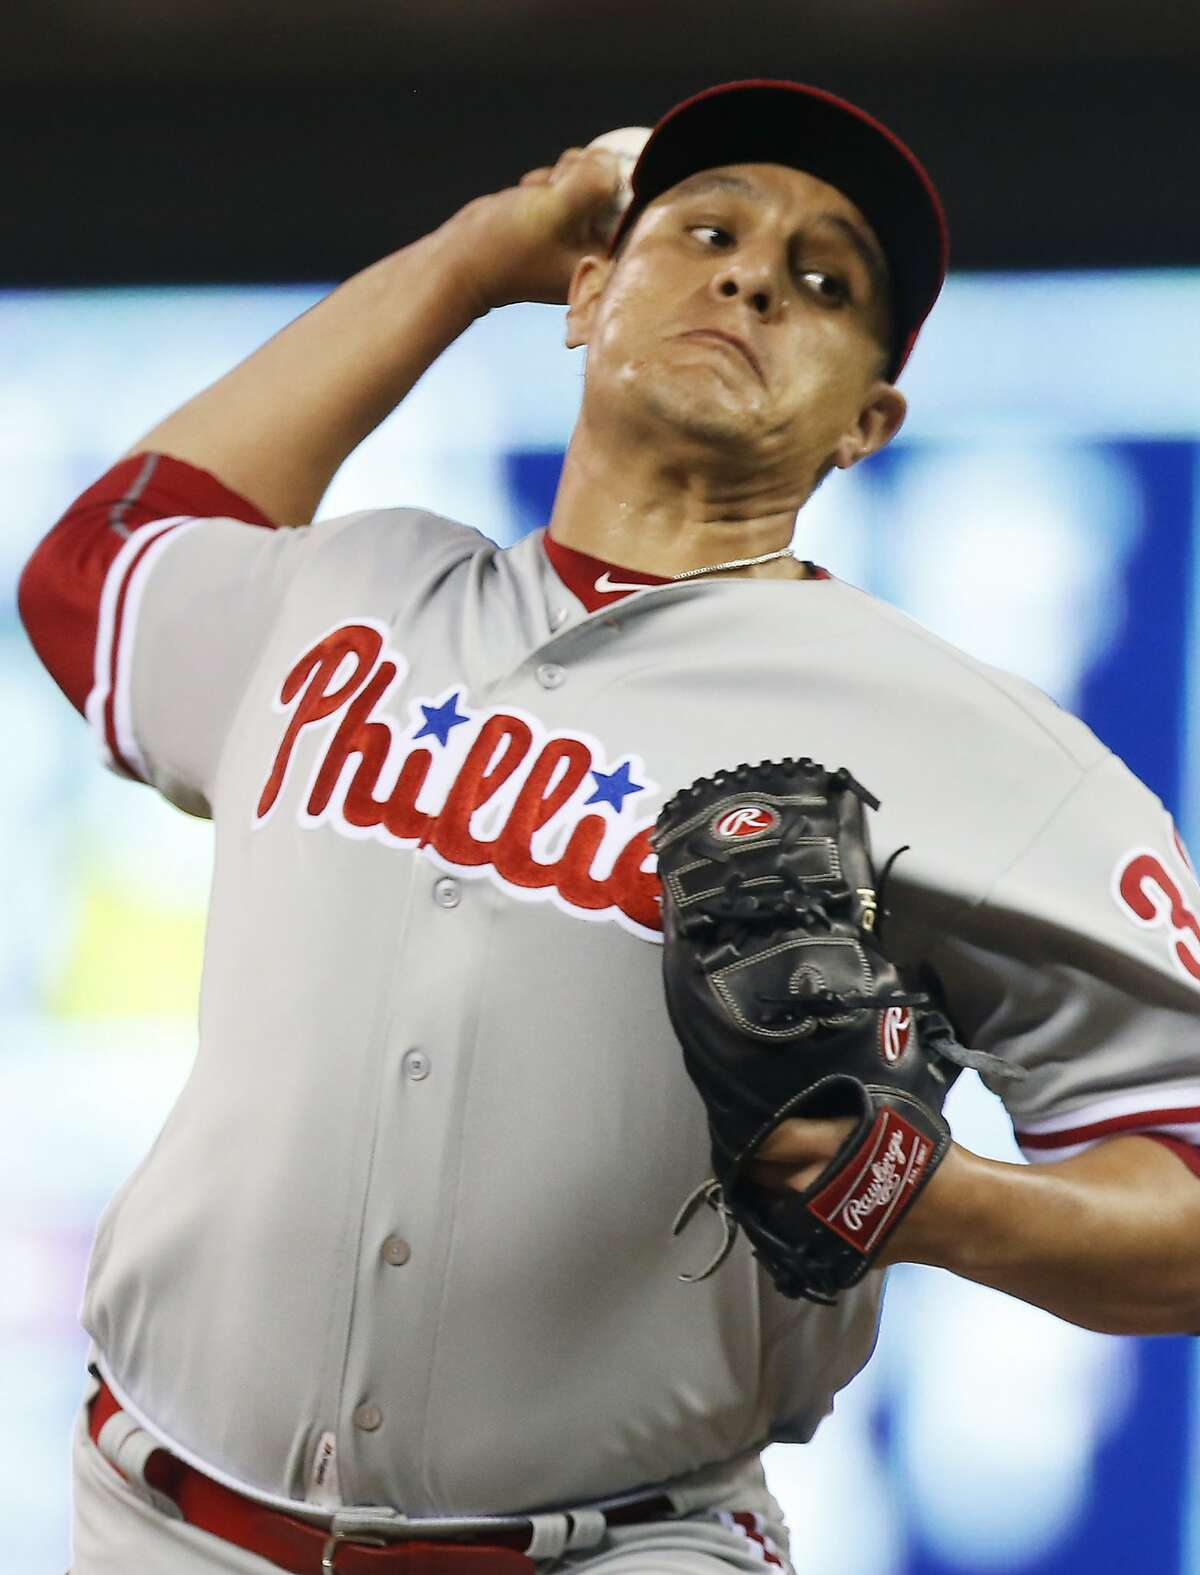 Philadelphia Phillies relief pitcher David Hernandez throws against the Minnesota Twins during the seventh inning of a baseball game Wednesday, June 22, 2016, in Minneapolis. The Twins won 6-5. Hernandez took the loss. (AP Photo/Jim Mone)